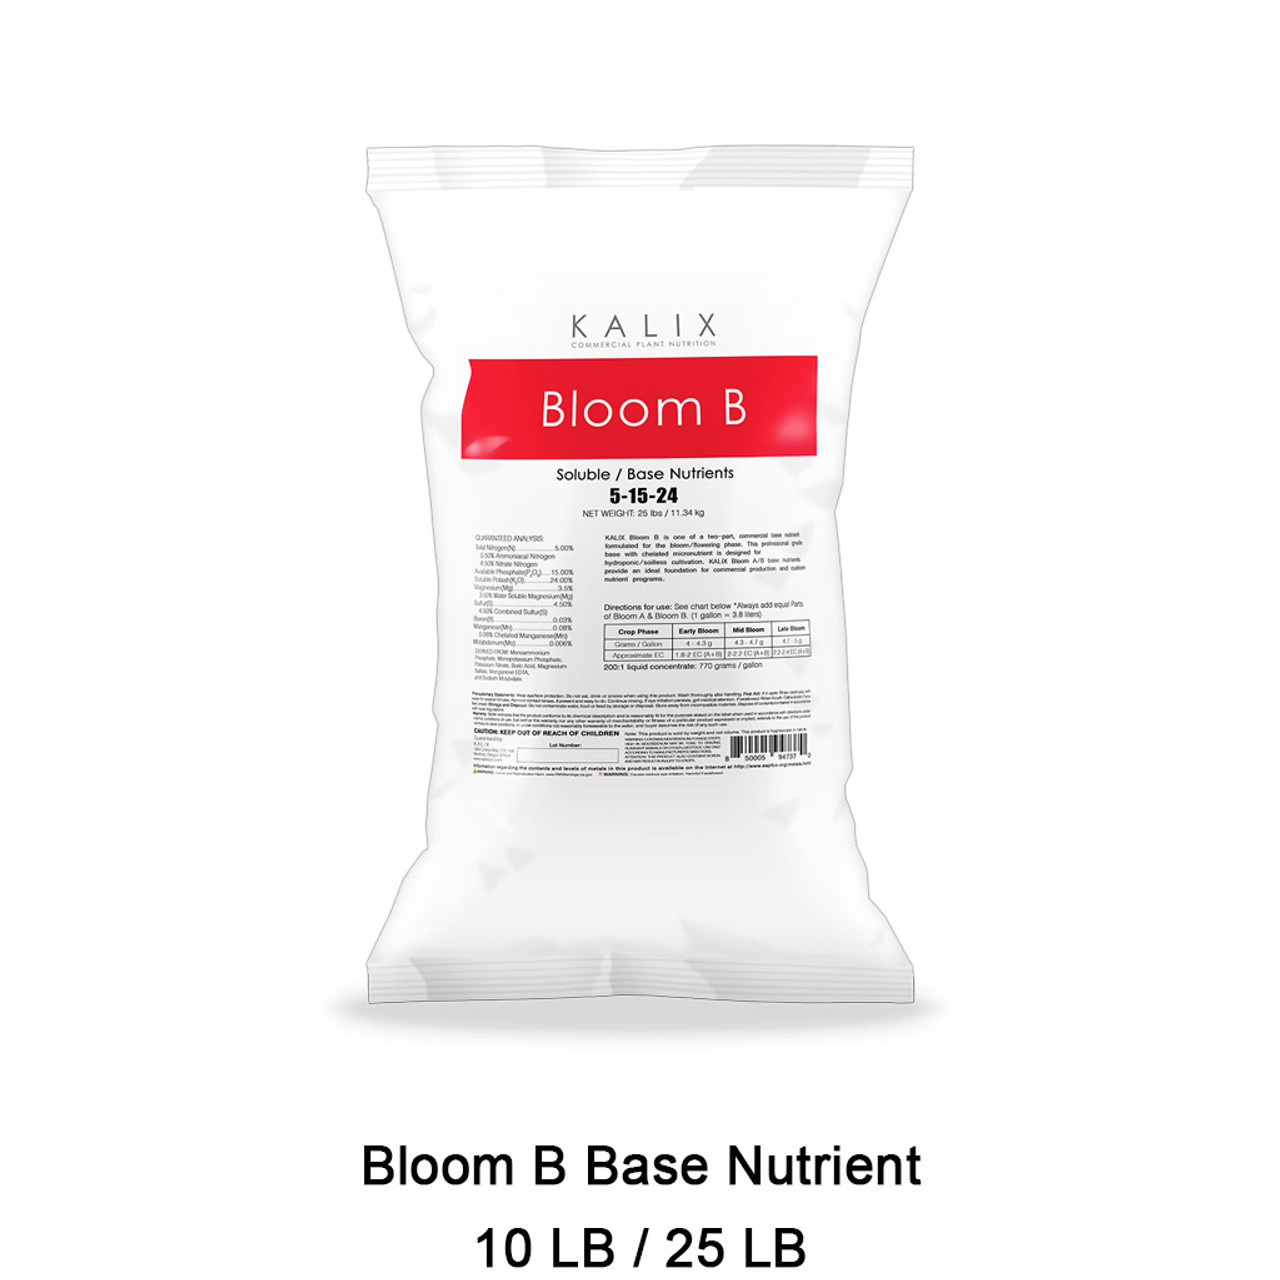 Kalix Bloom B Base 25LB